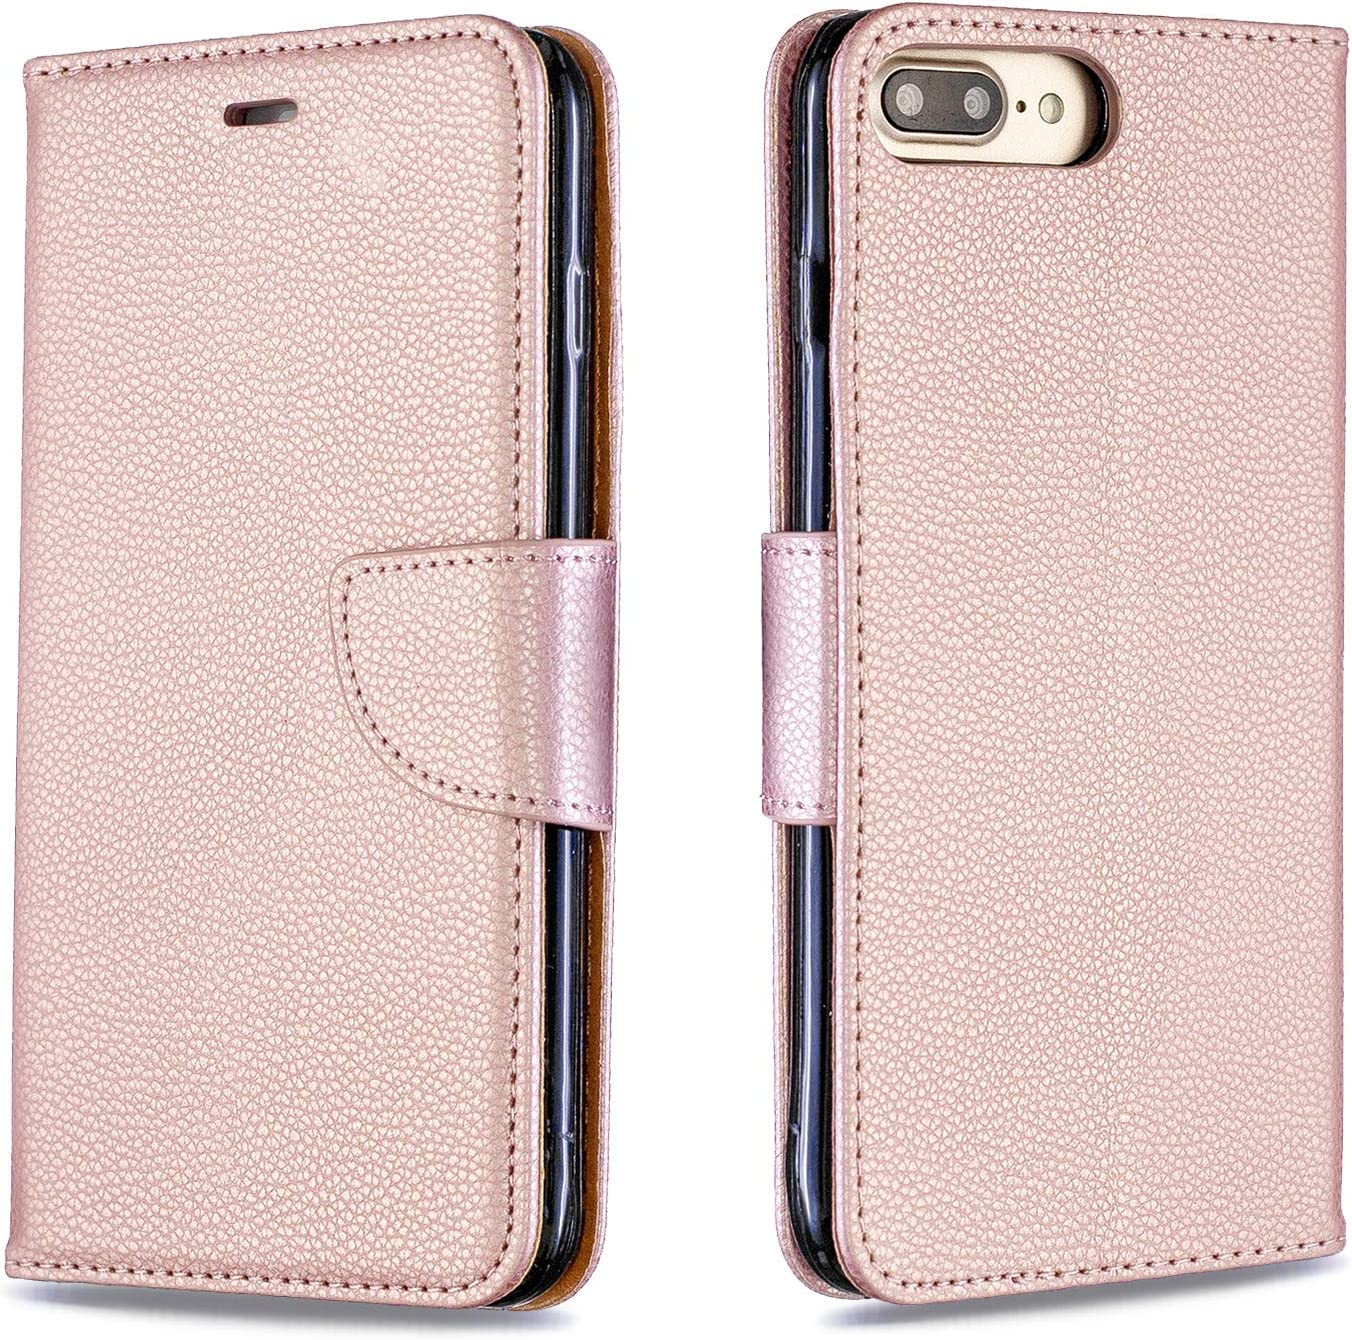 PU Leather with Silicone TPU Shell Kickstand Card Holder Hand Strap Money Slot Magnetic Closure Flip Case Compatible with iPhone 7 Plus//8 Plus Compatible with iPhone 7 Plus Phone Case Wallet Leather